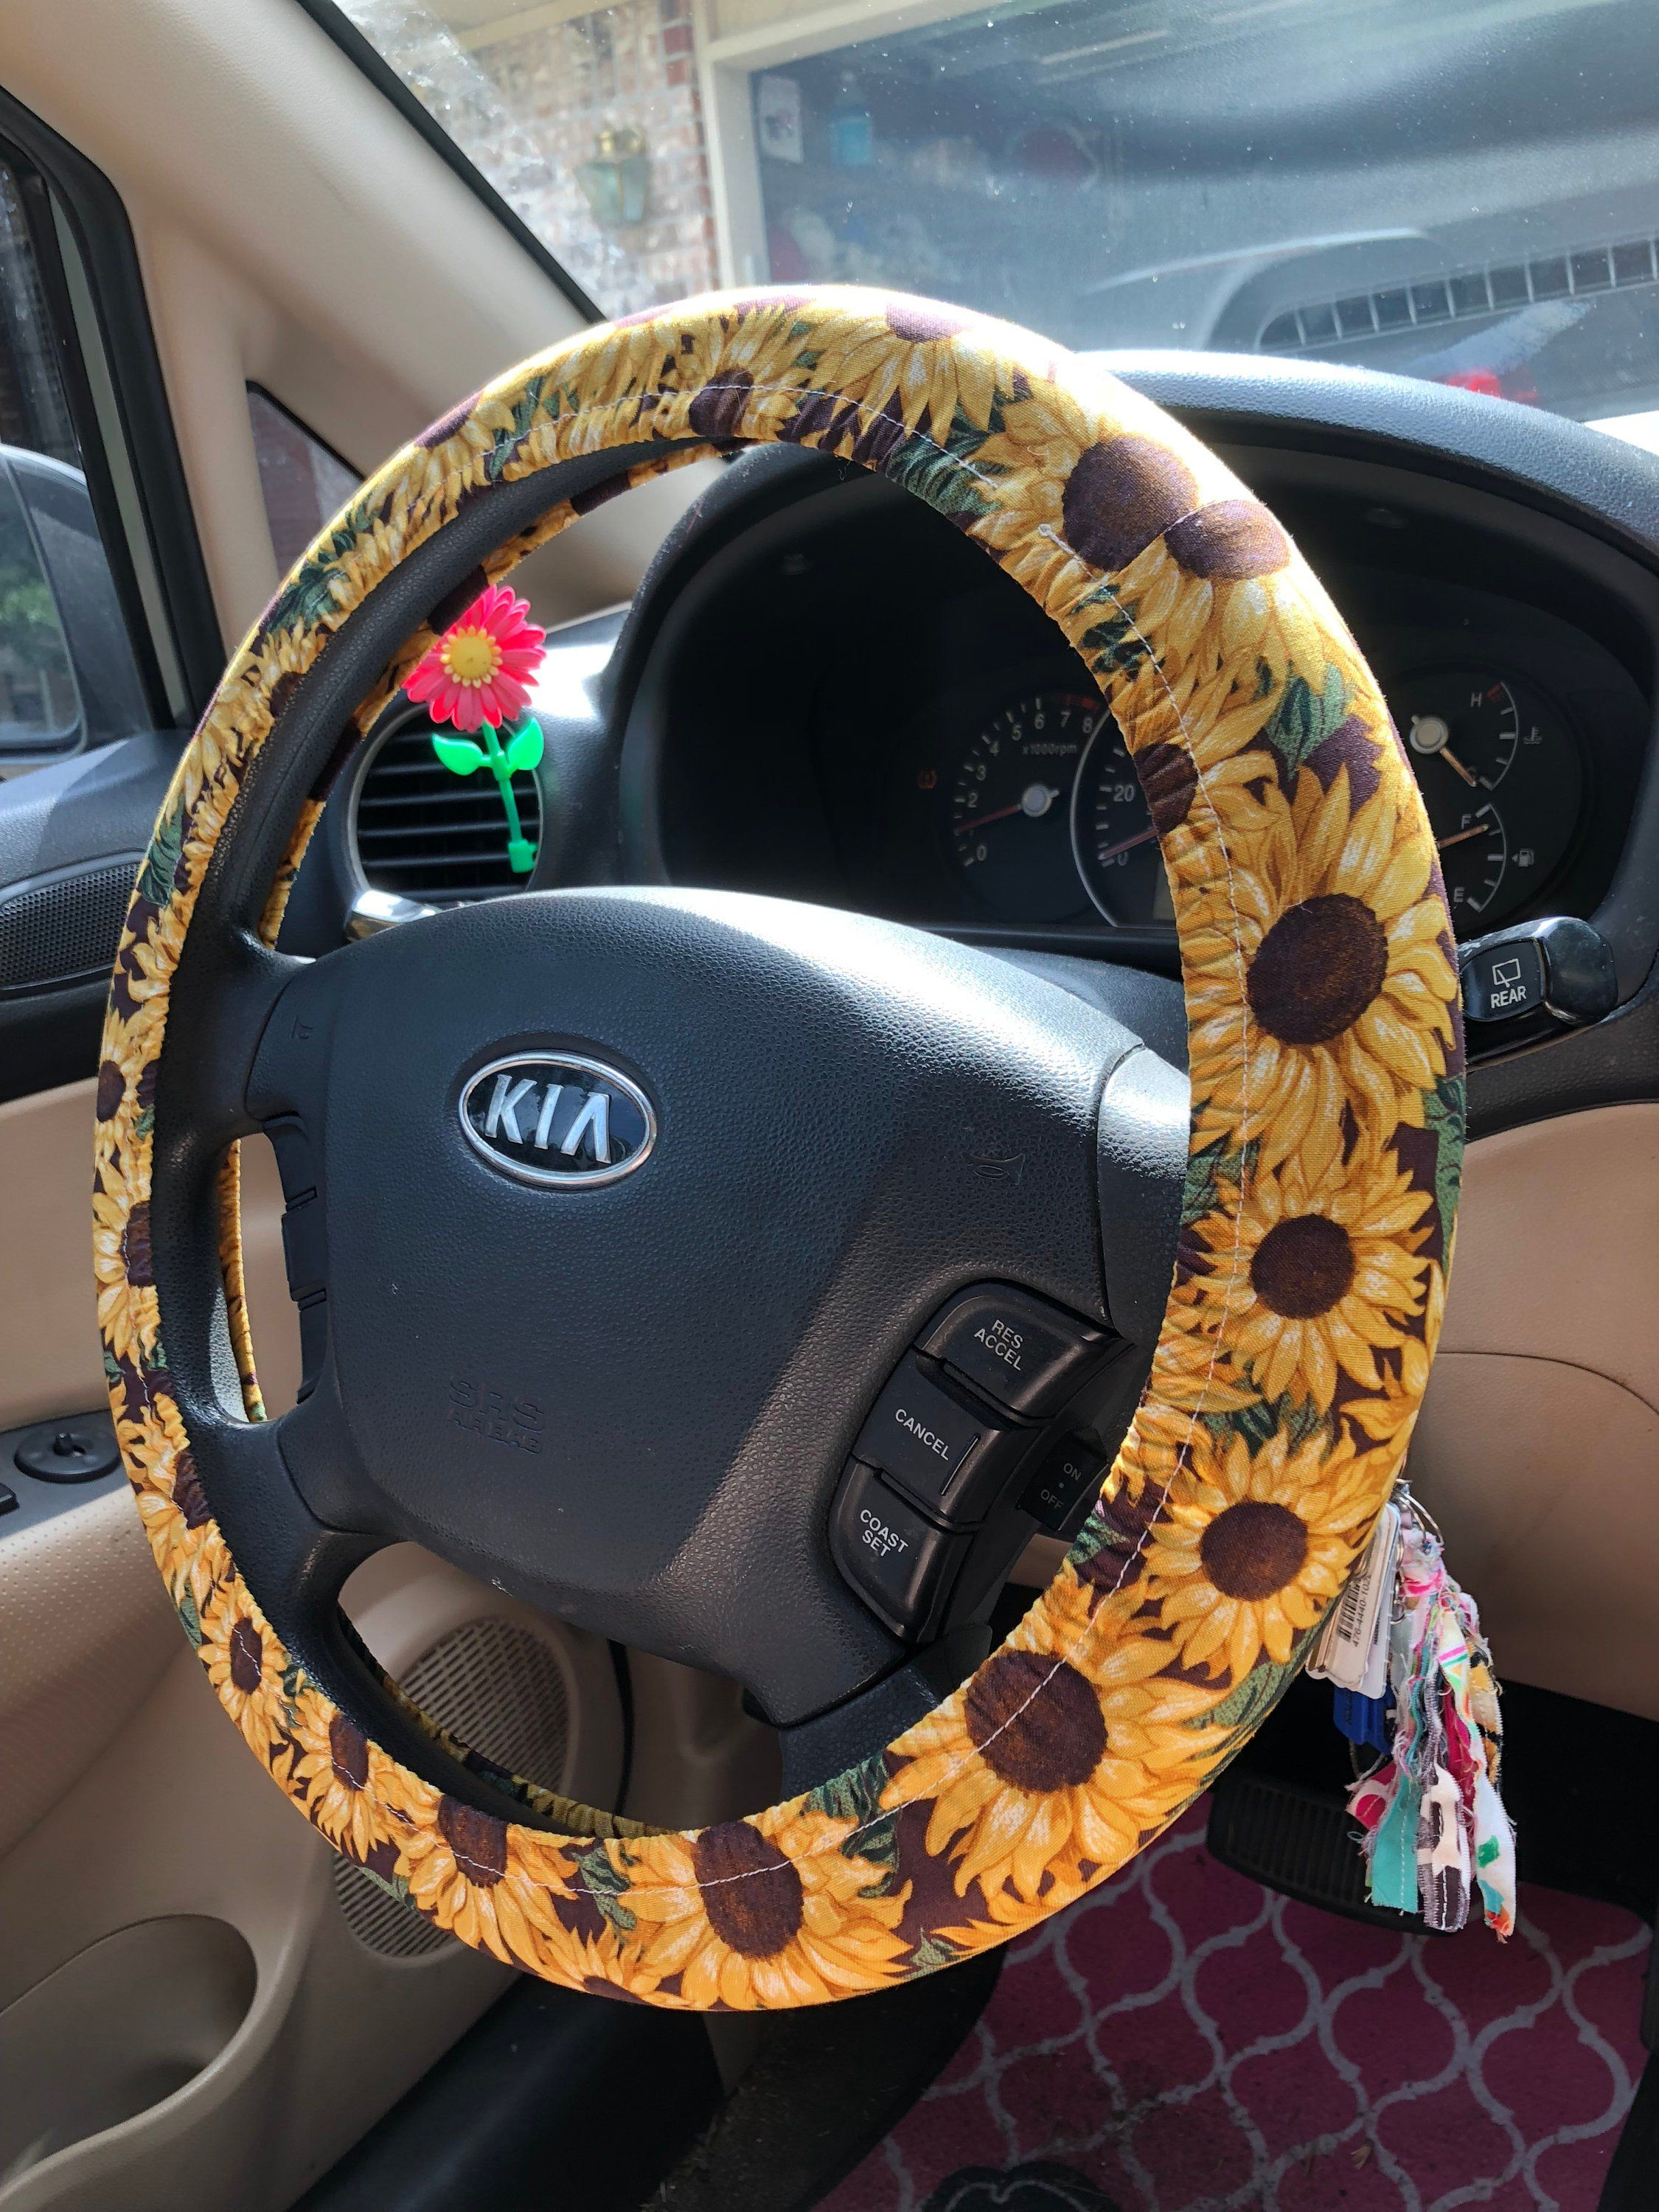 Magnificent Sunflower With Leaves Steering Wheel Cover Inspiration Andrewgaddart Wooden Chair Designs For Living Room Andrewgaddartcom